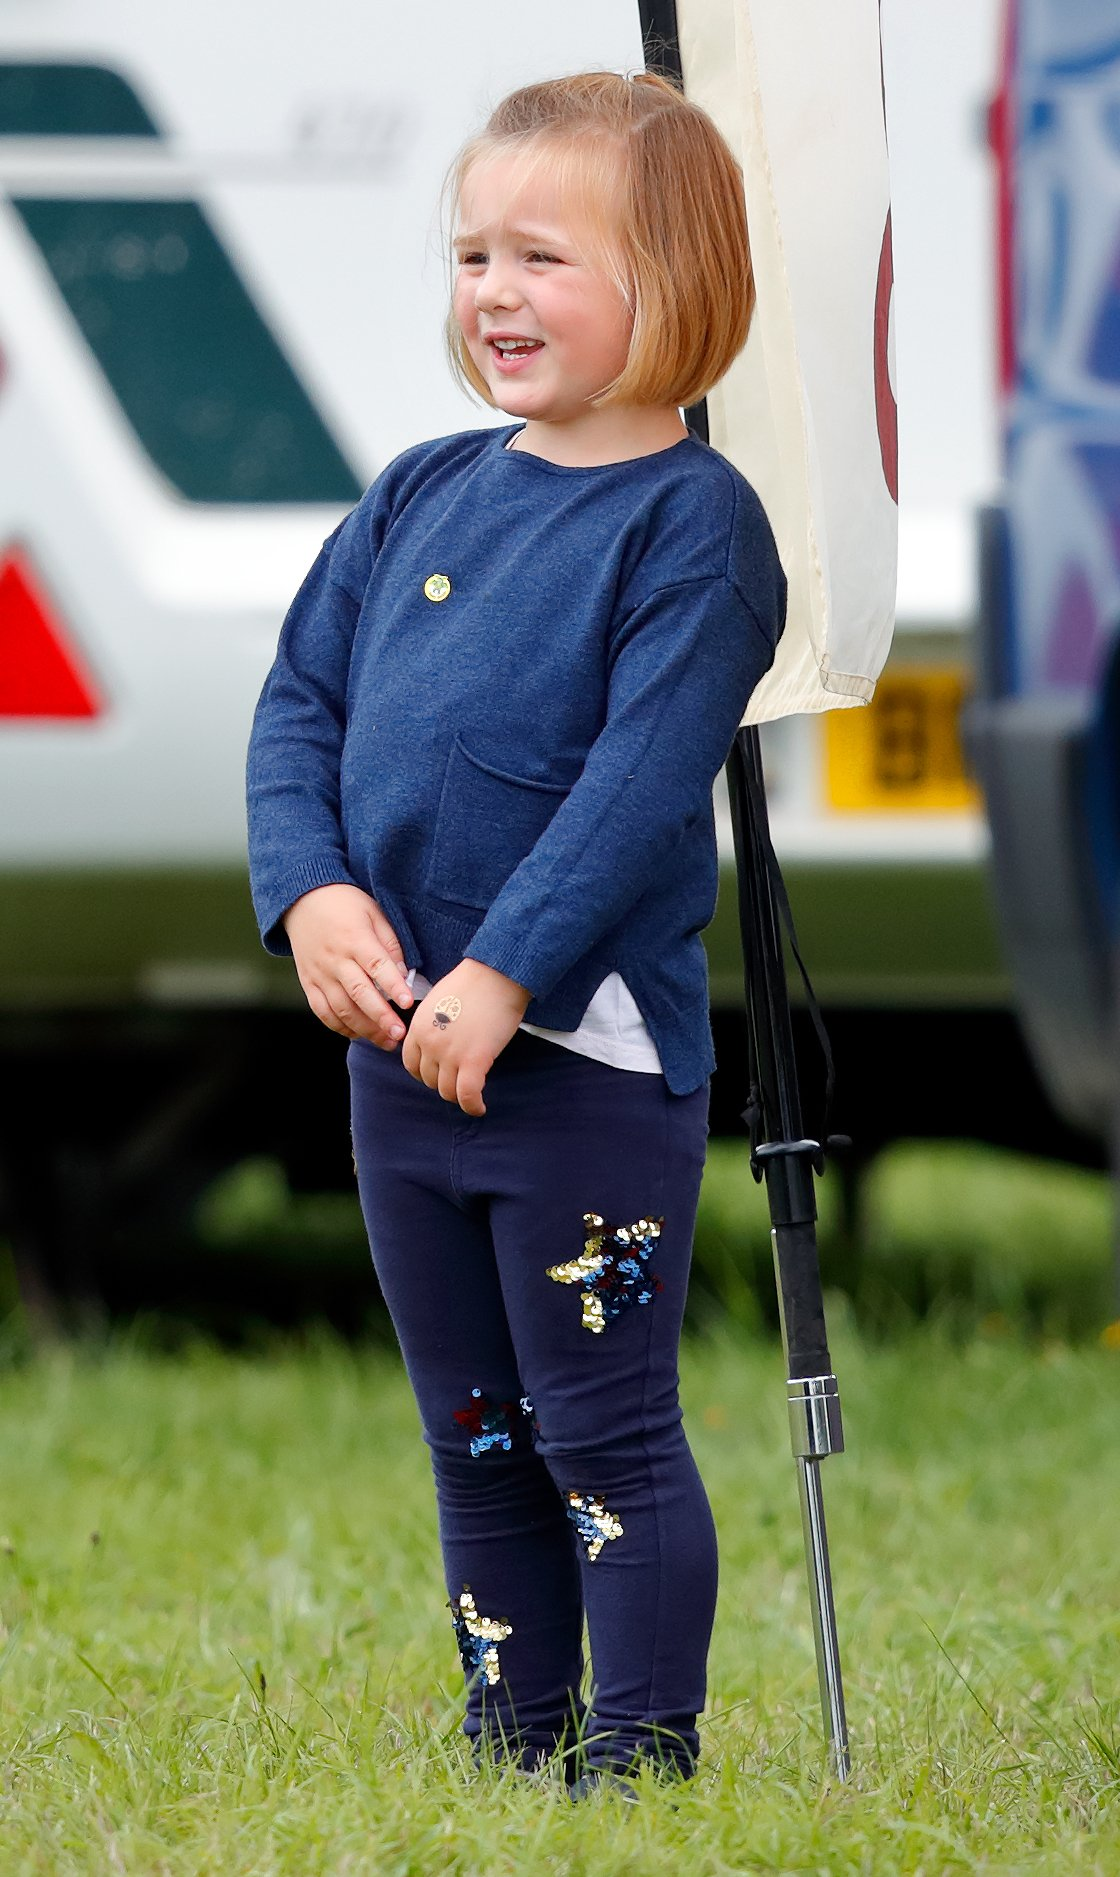 Mia Tindall | Quelle: Getty Images